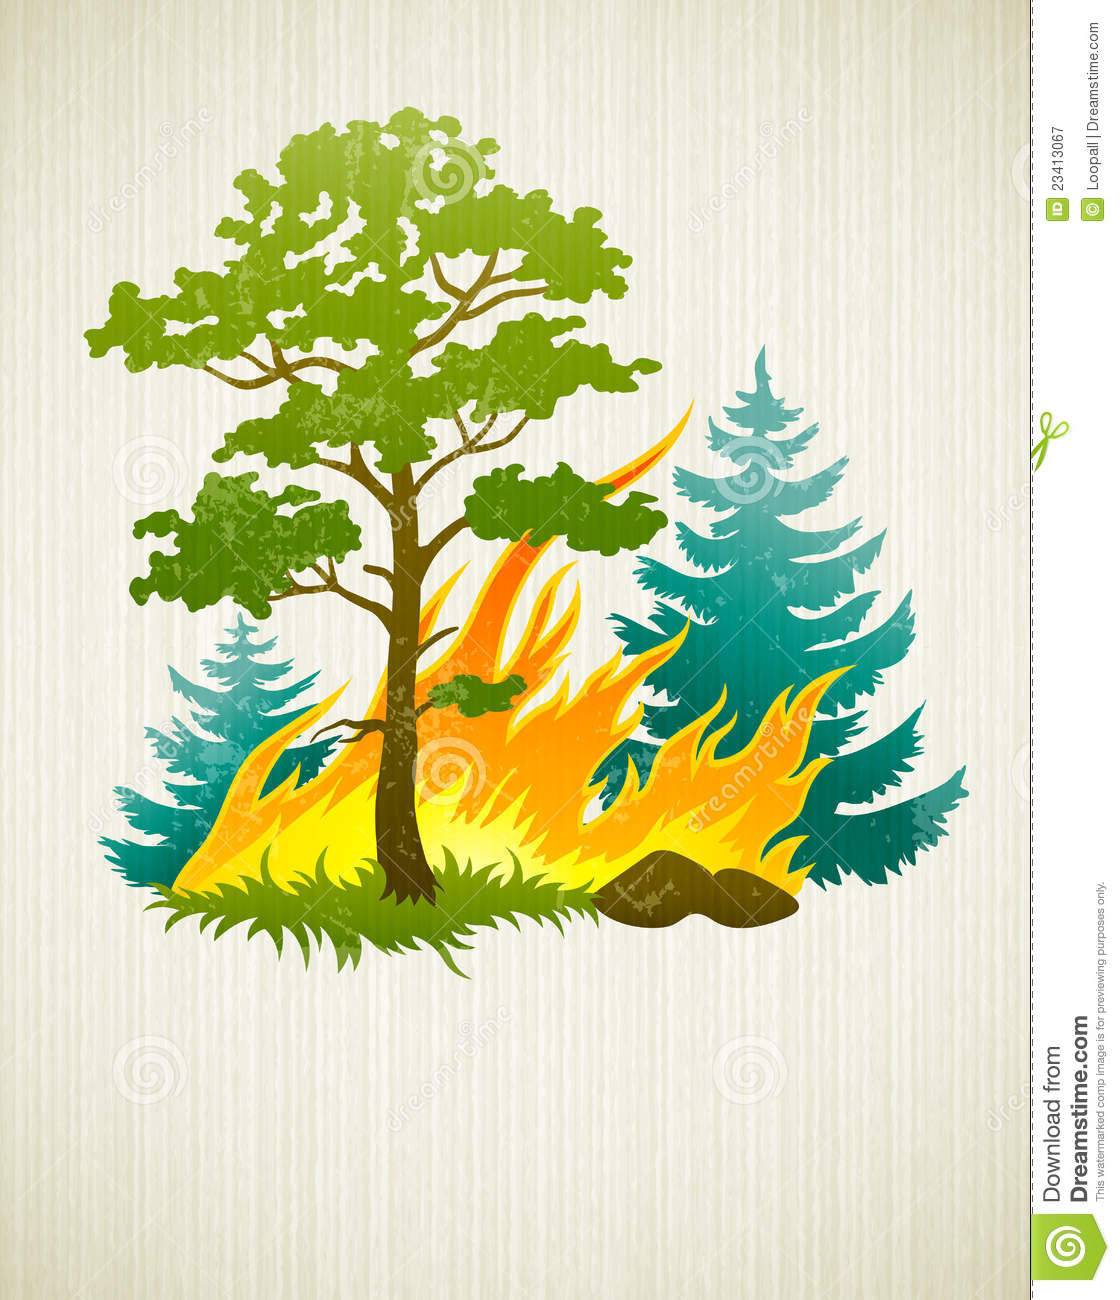 Bushfire clipart #8, Download drawings